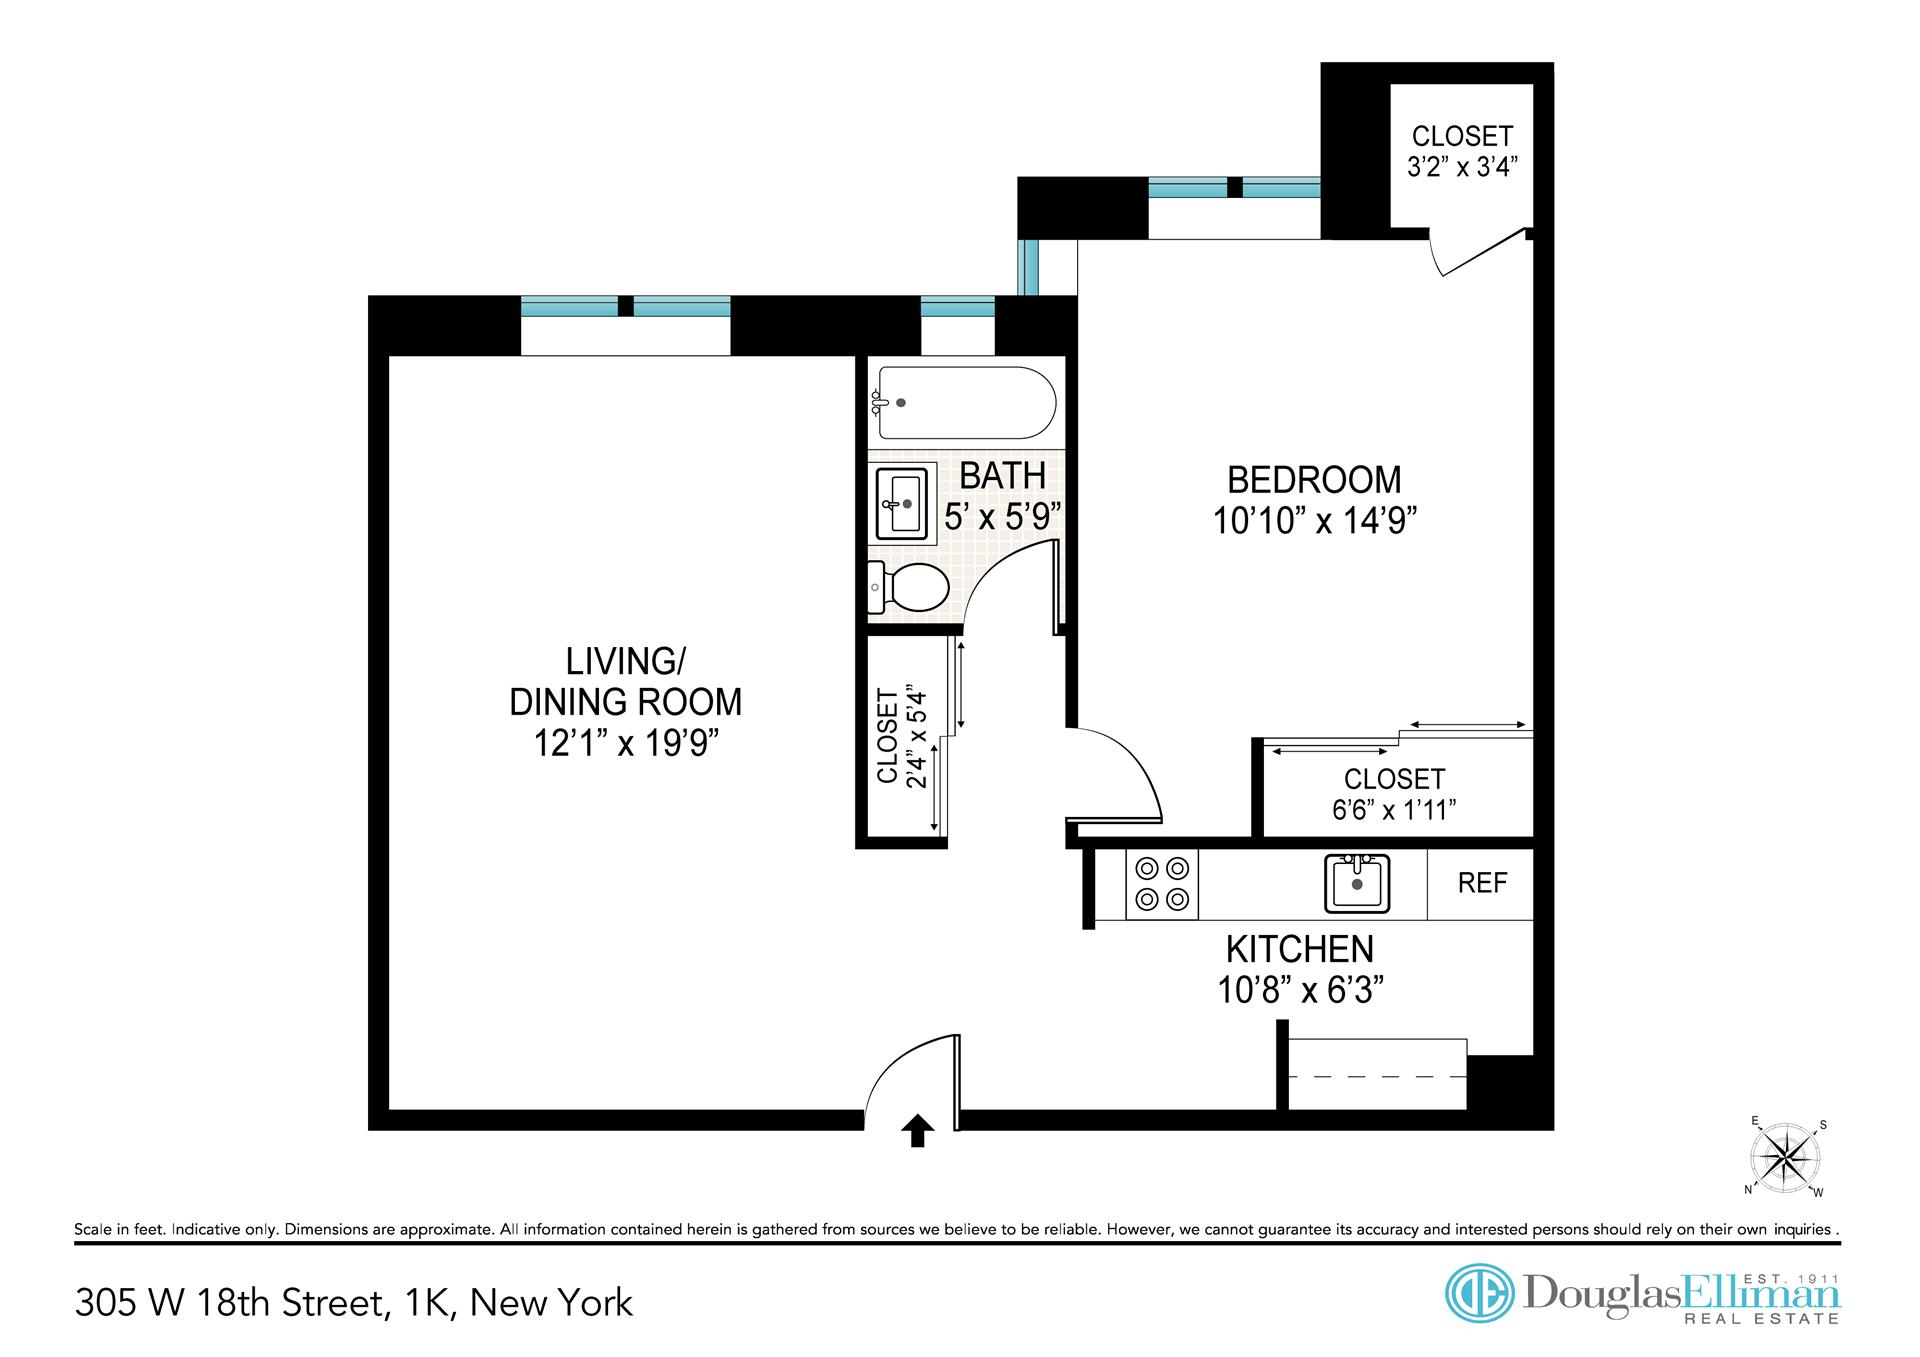 Floor plan of 305 West 18th St, 1K - Chelsea, New York